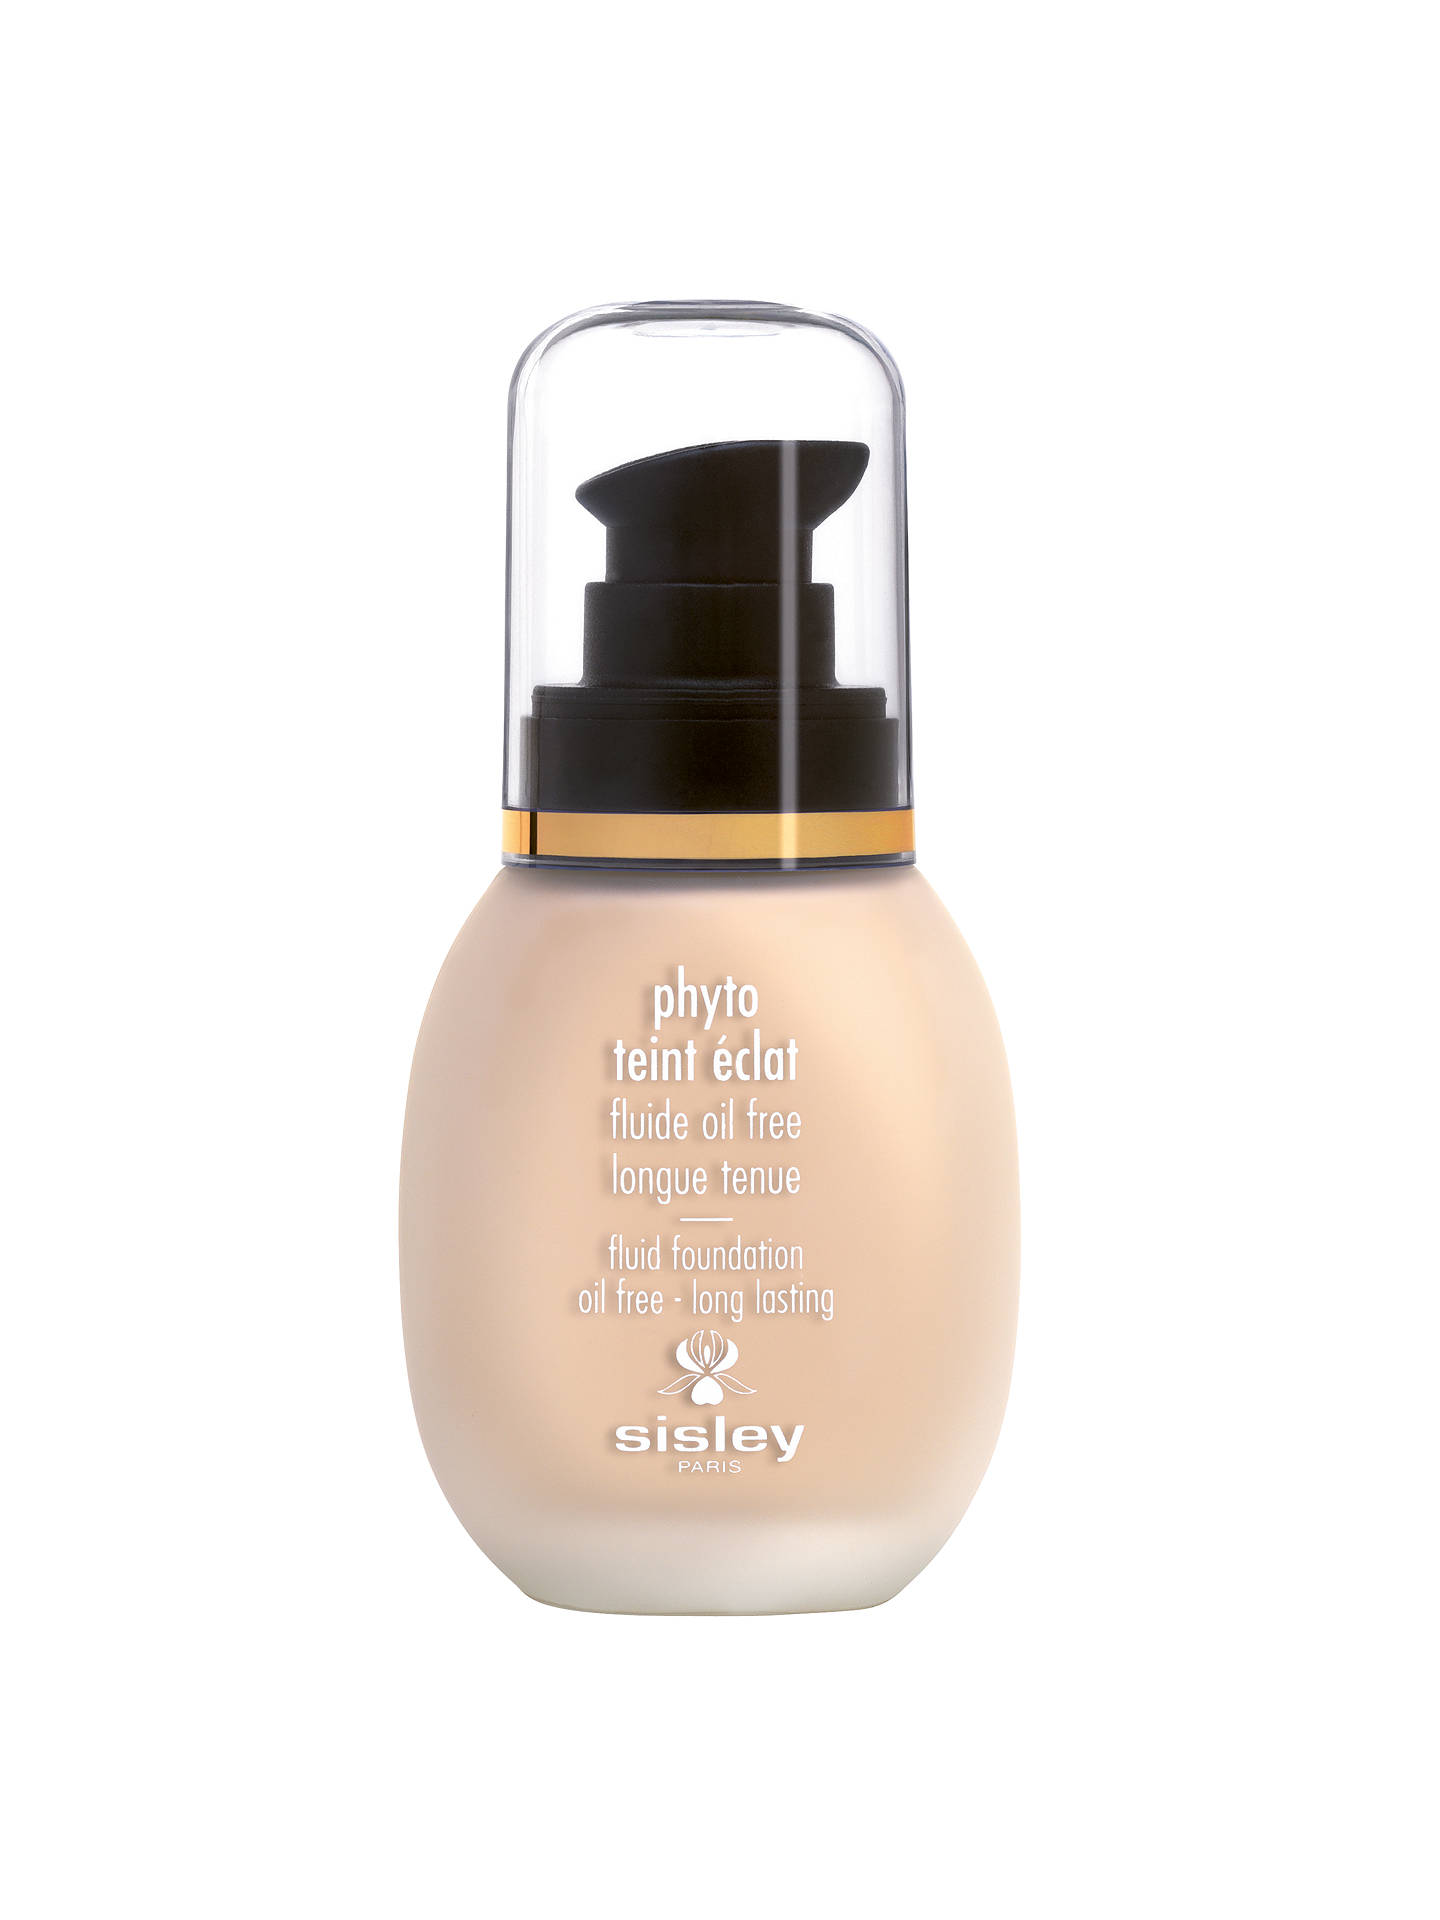 Buy Sisley Phyto-Teint Eclat Foundation, 30ml, 4 Honey Online at johnlewis.com